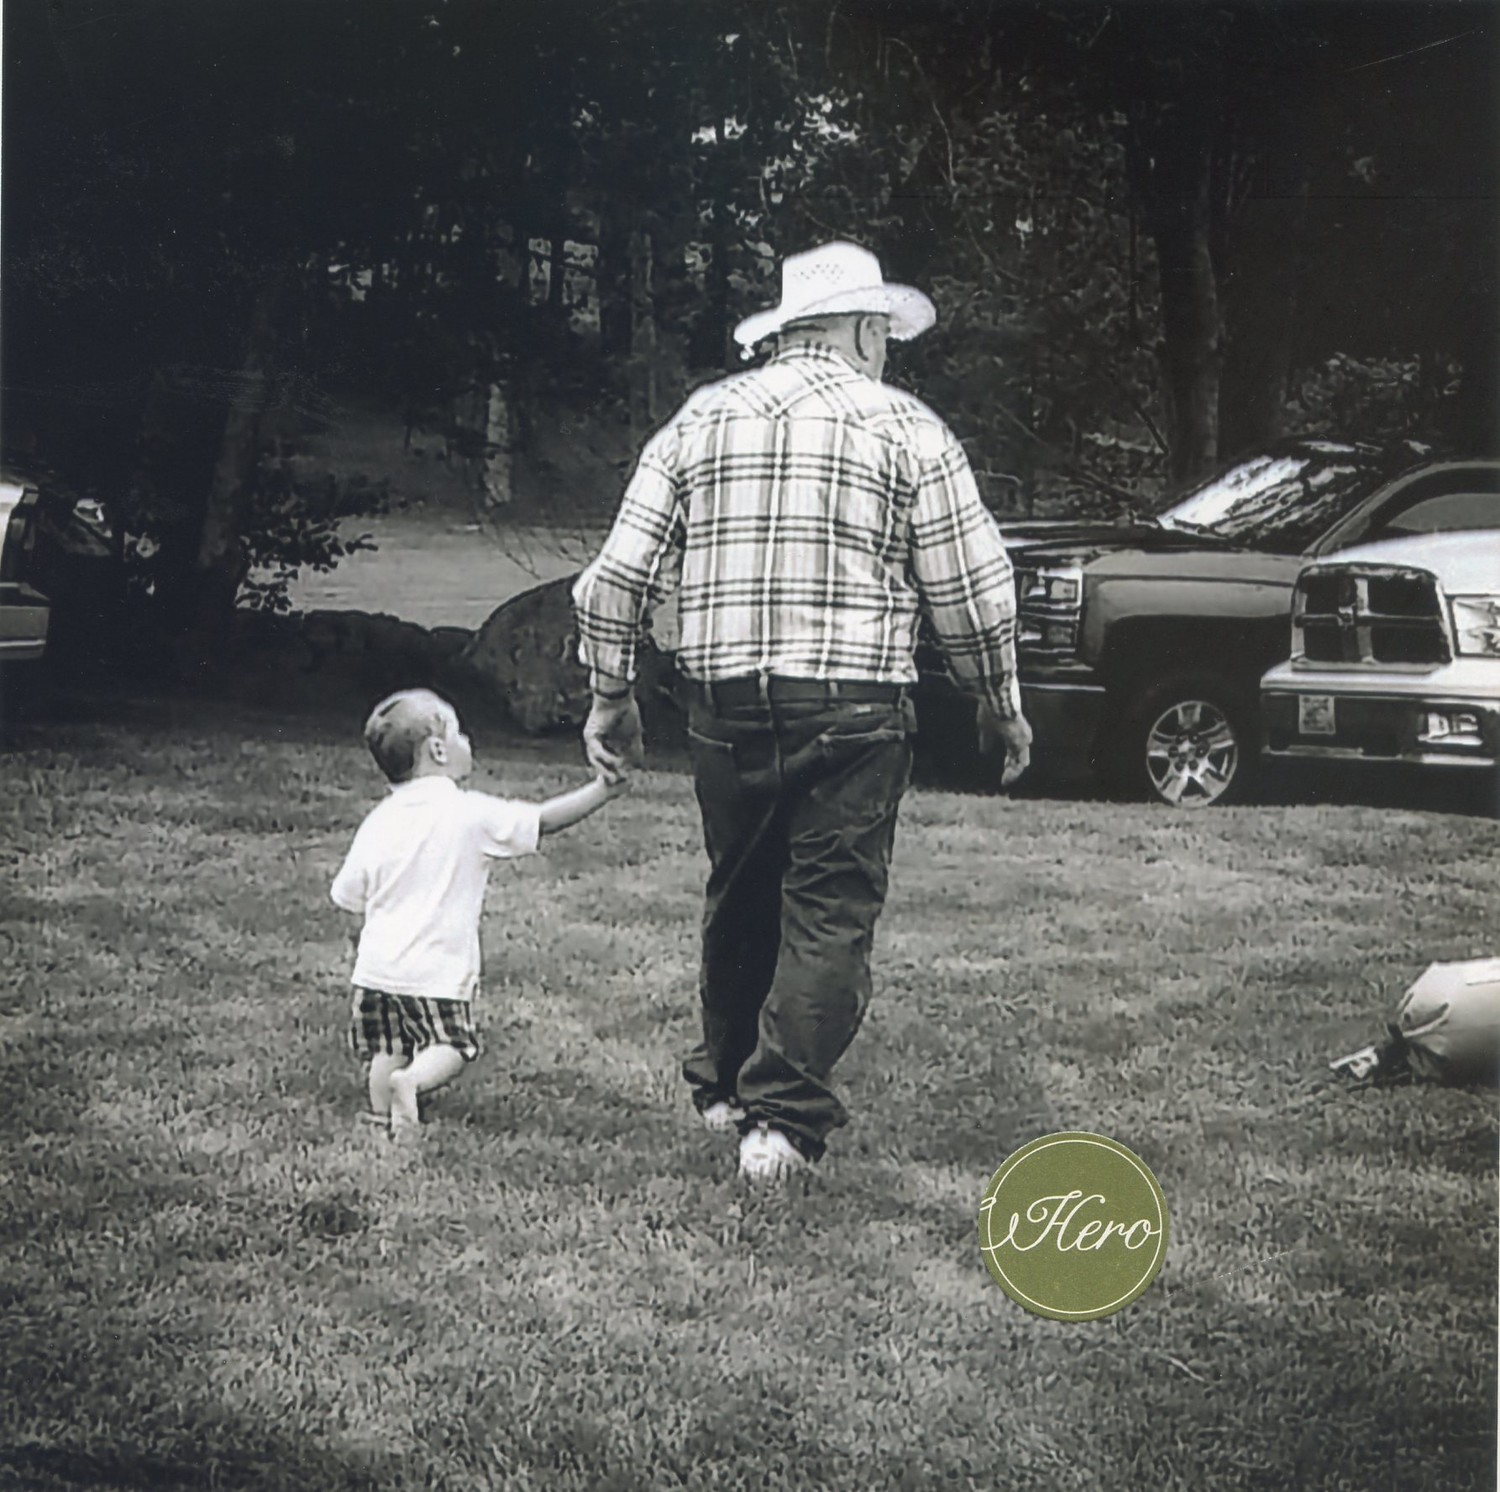 George shows his grandson how to walk like a cowboy.